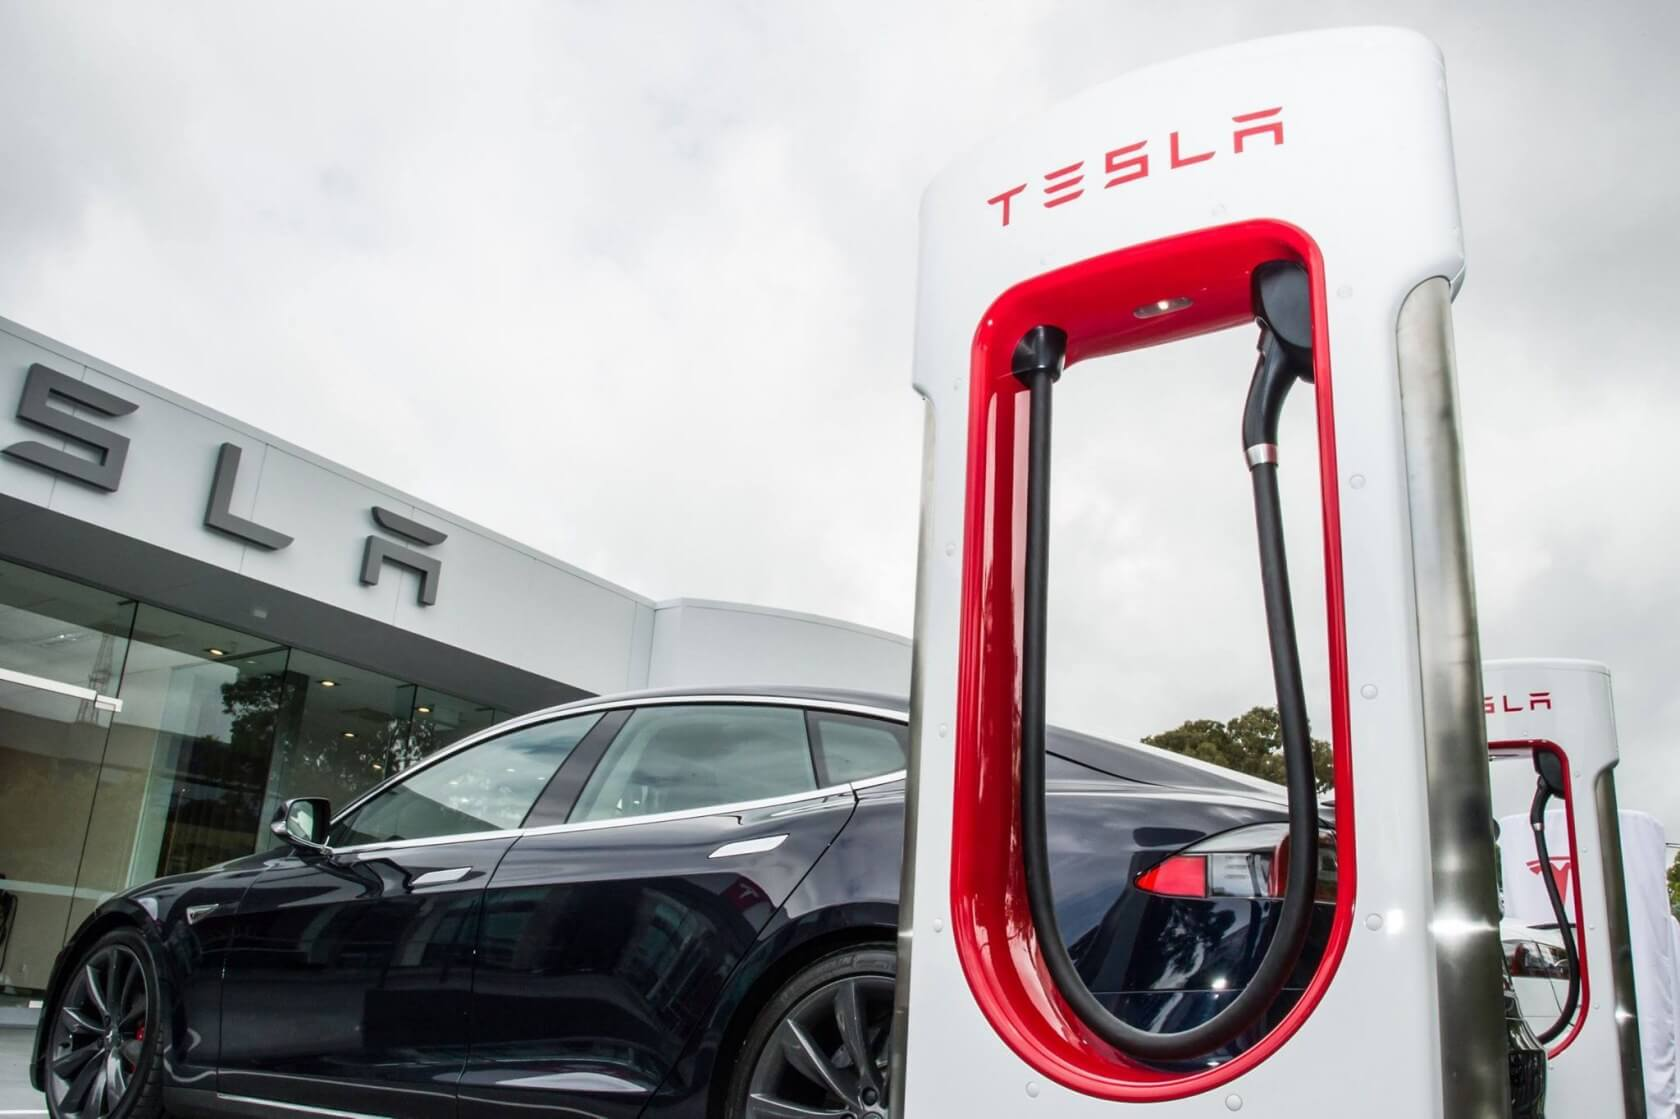 Full tax credits still in force, Tesla tells potential buyers